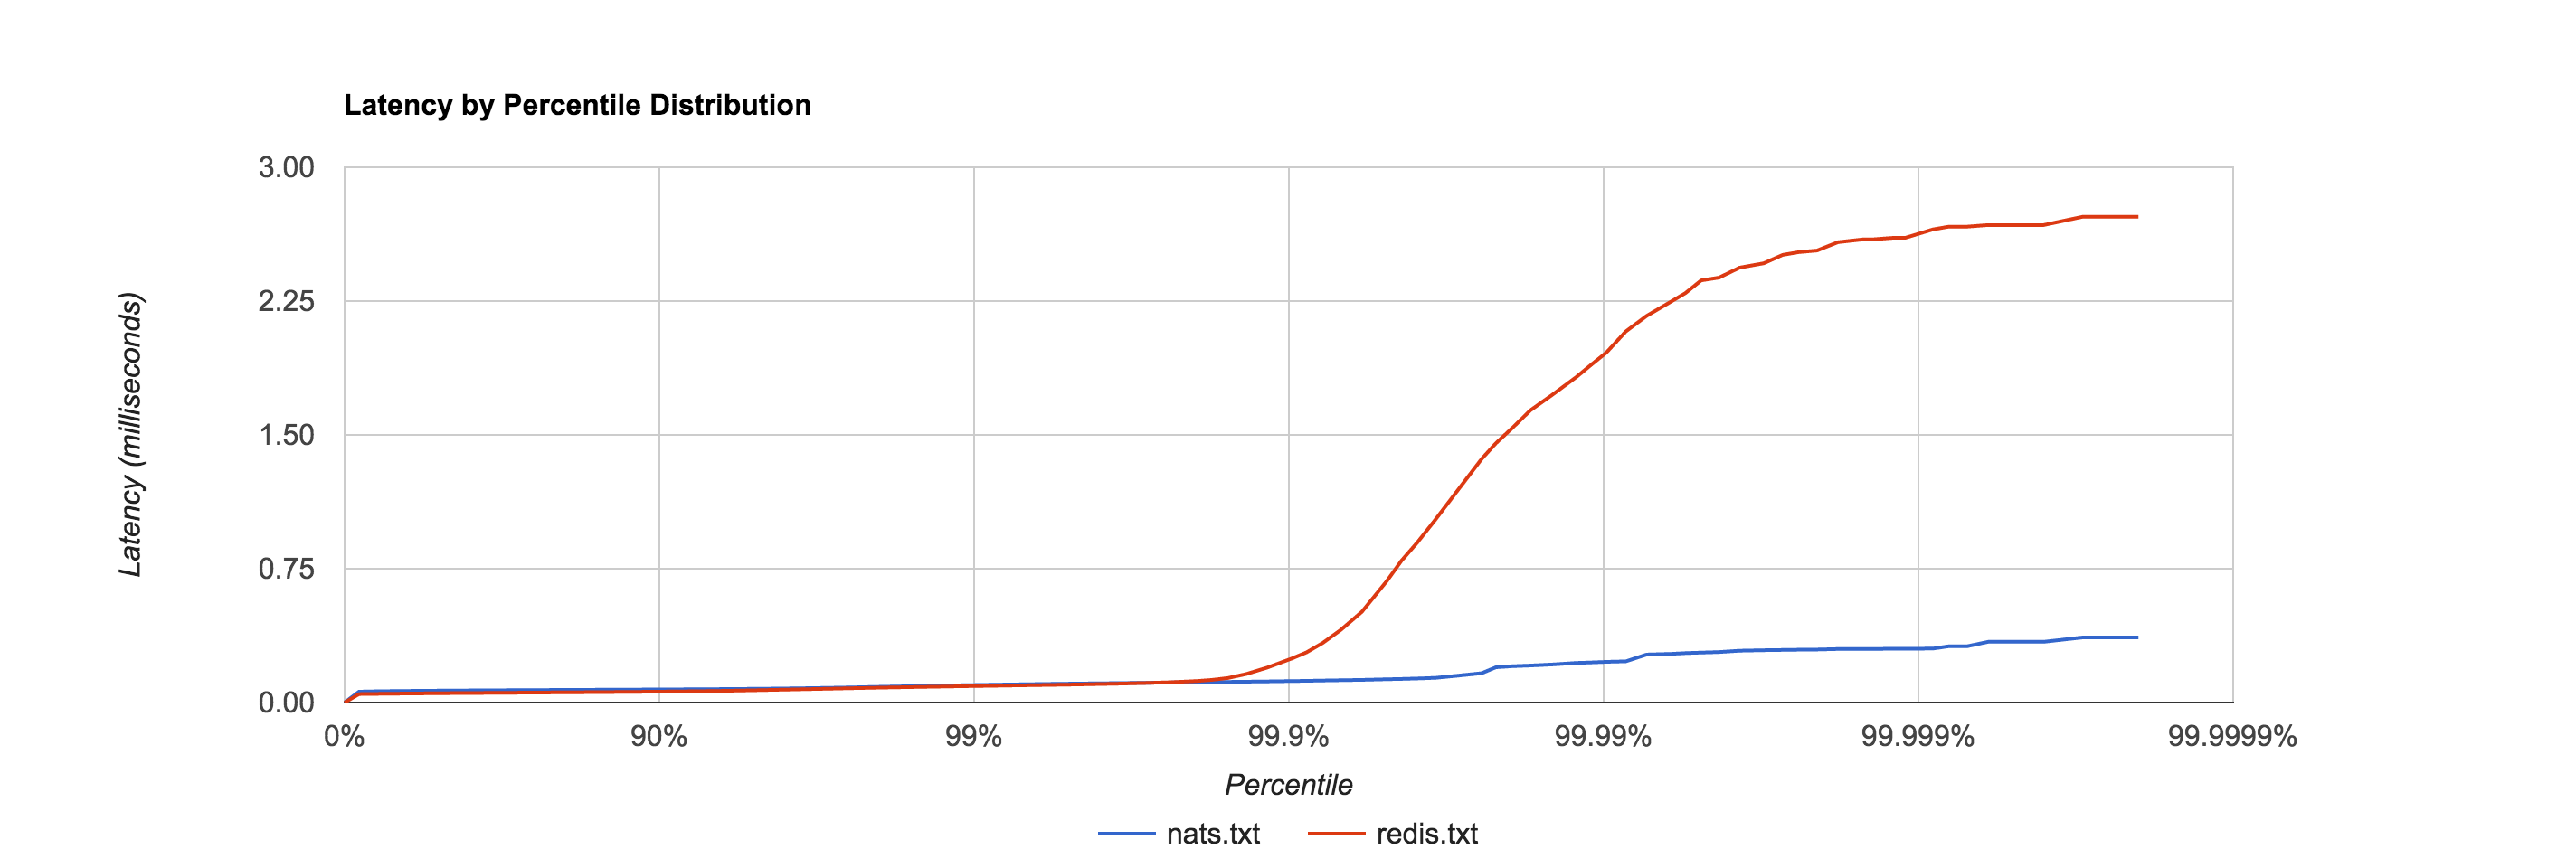 Latency Distribution